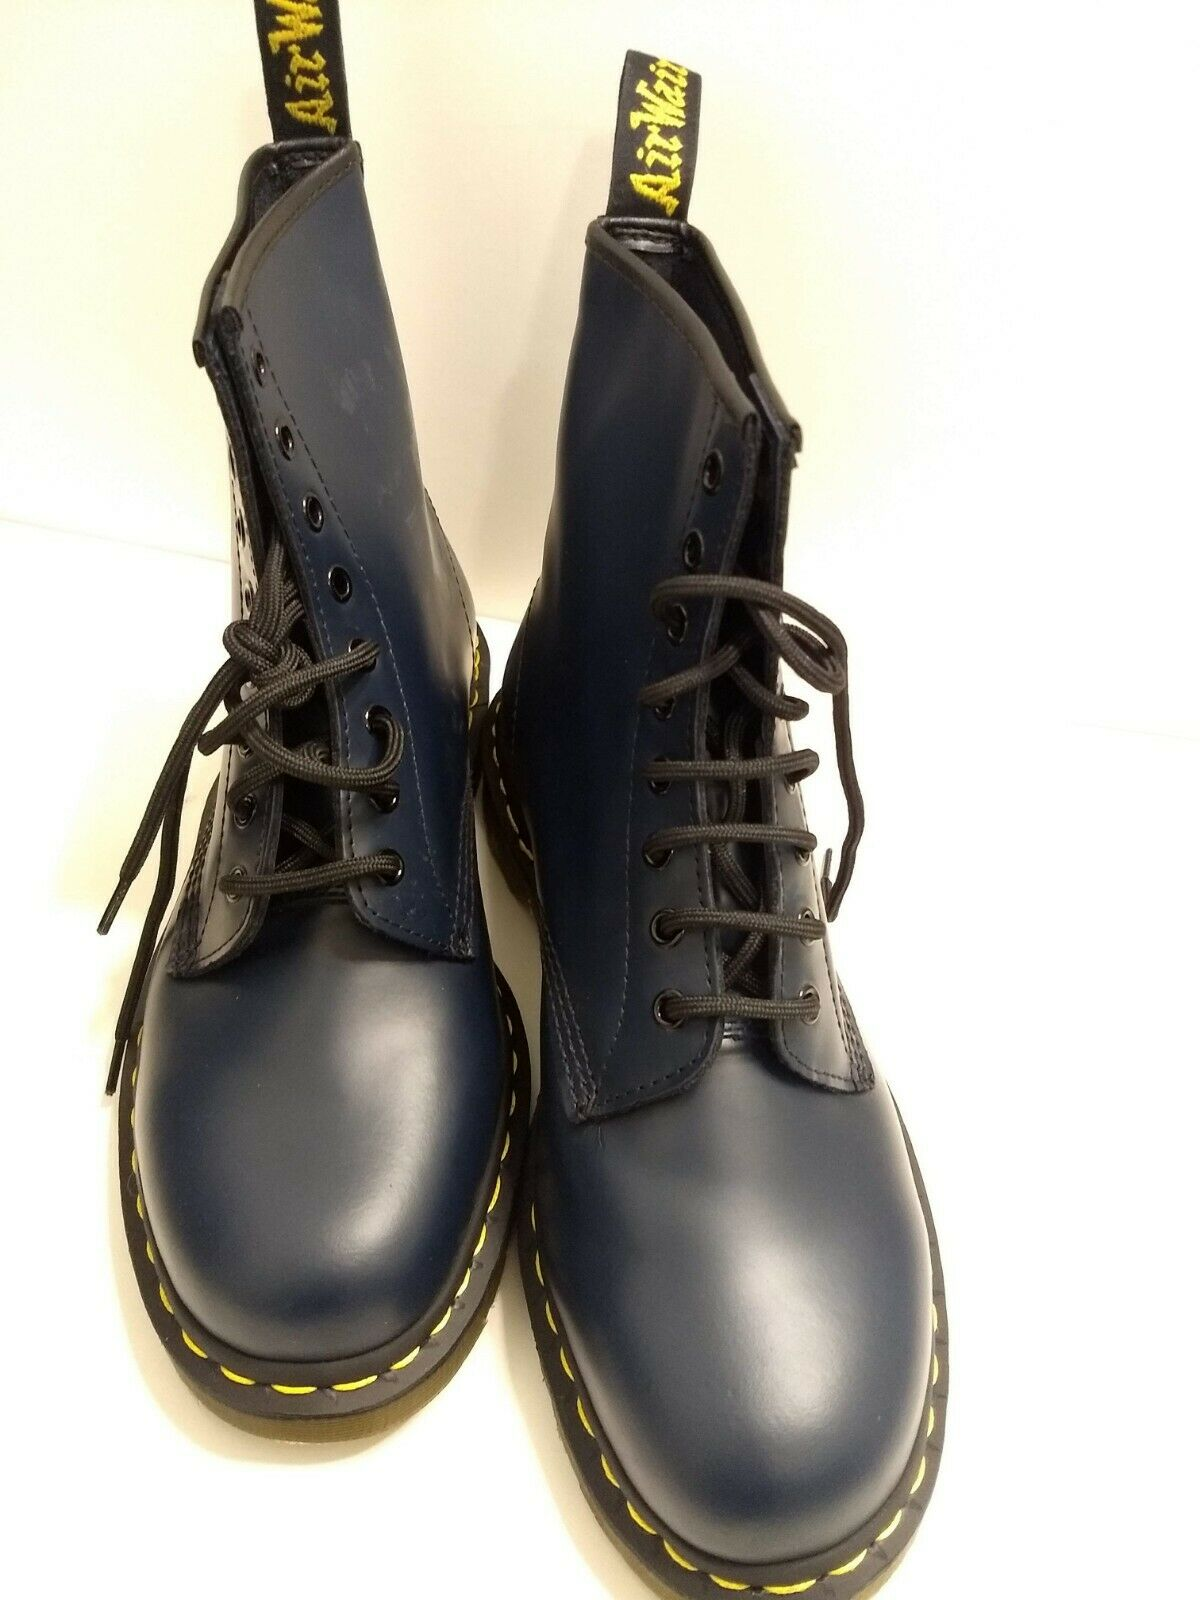 Dr Martens Doc Martens Mens 8-Eyelet Smooth Leather Boots Size 11 NAVY blueE 1460